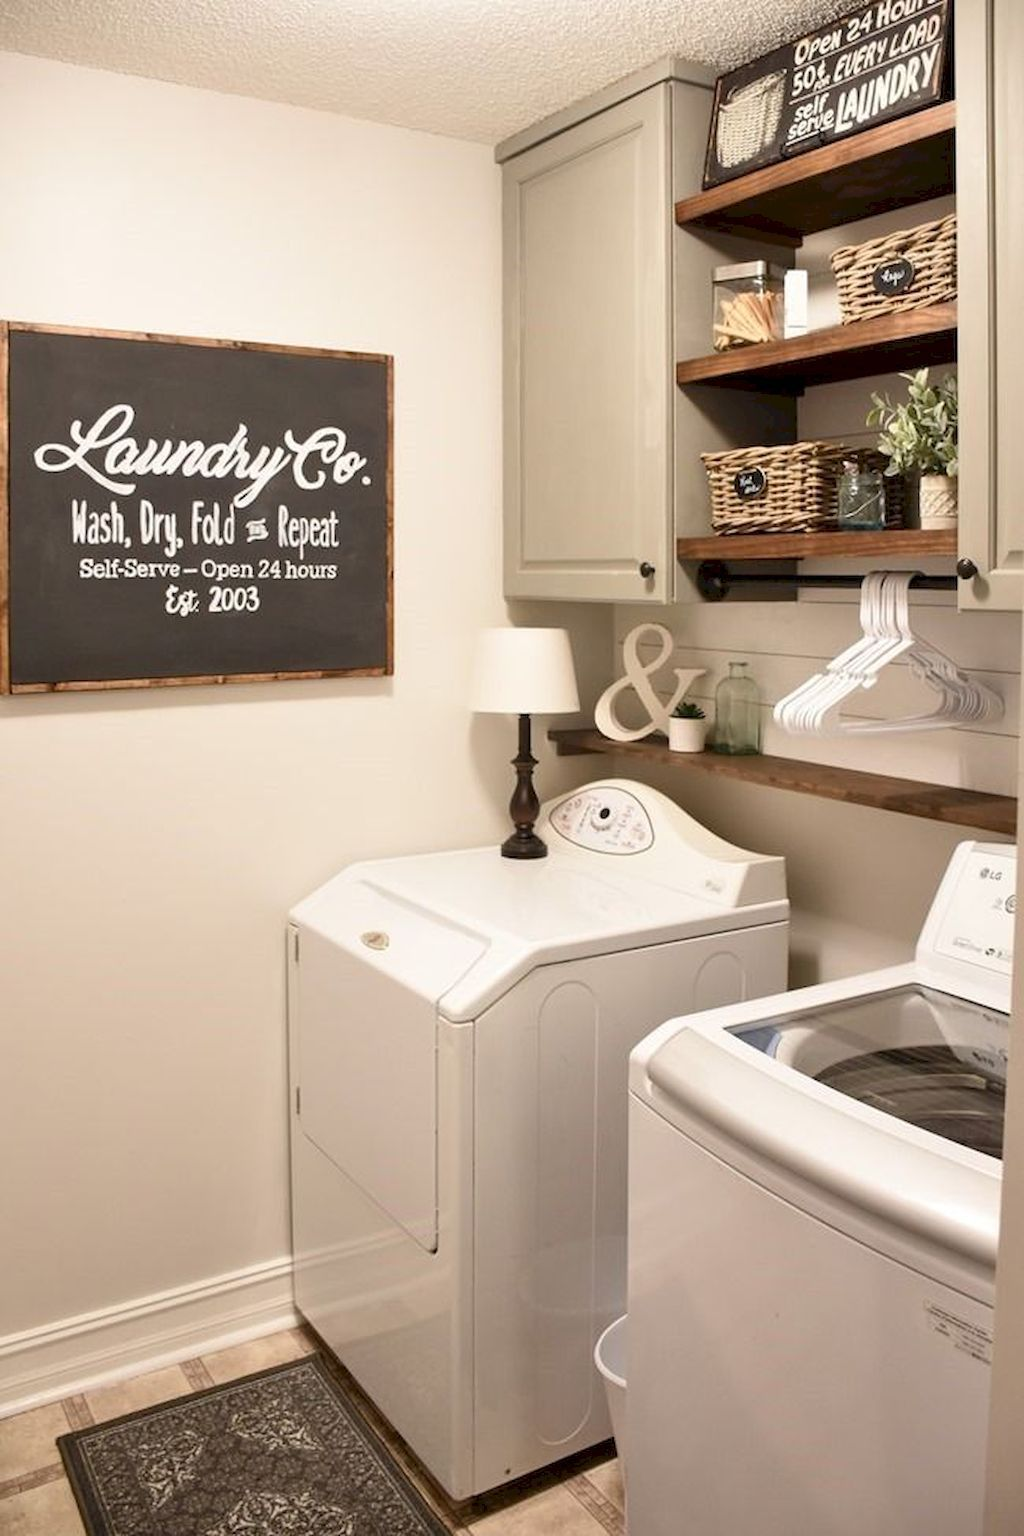 Laundry room decor remodel ideas to inspire you laundry make